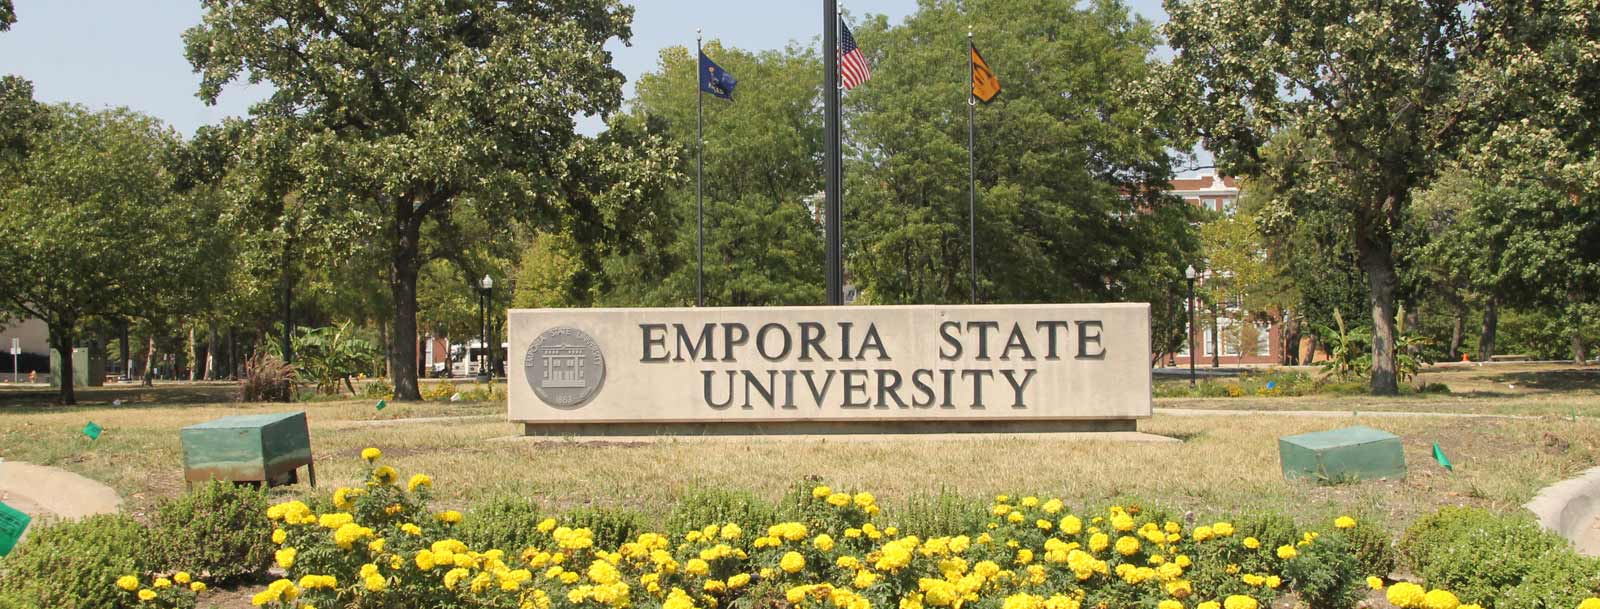 Take a look at the attractions around the area in Emporia senior living facility